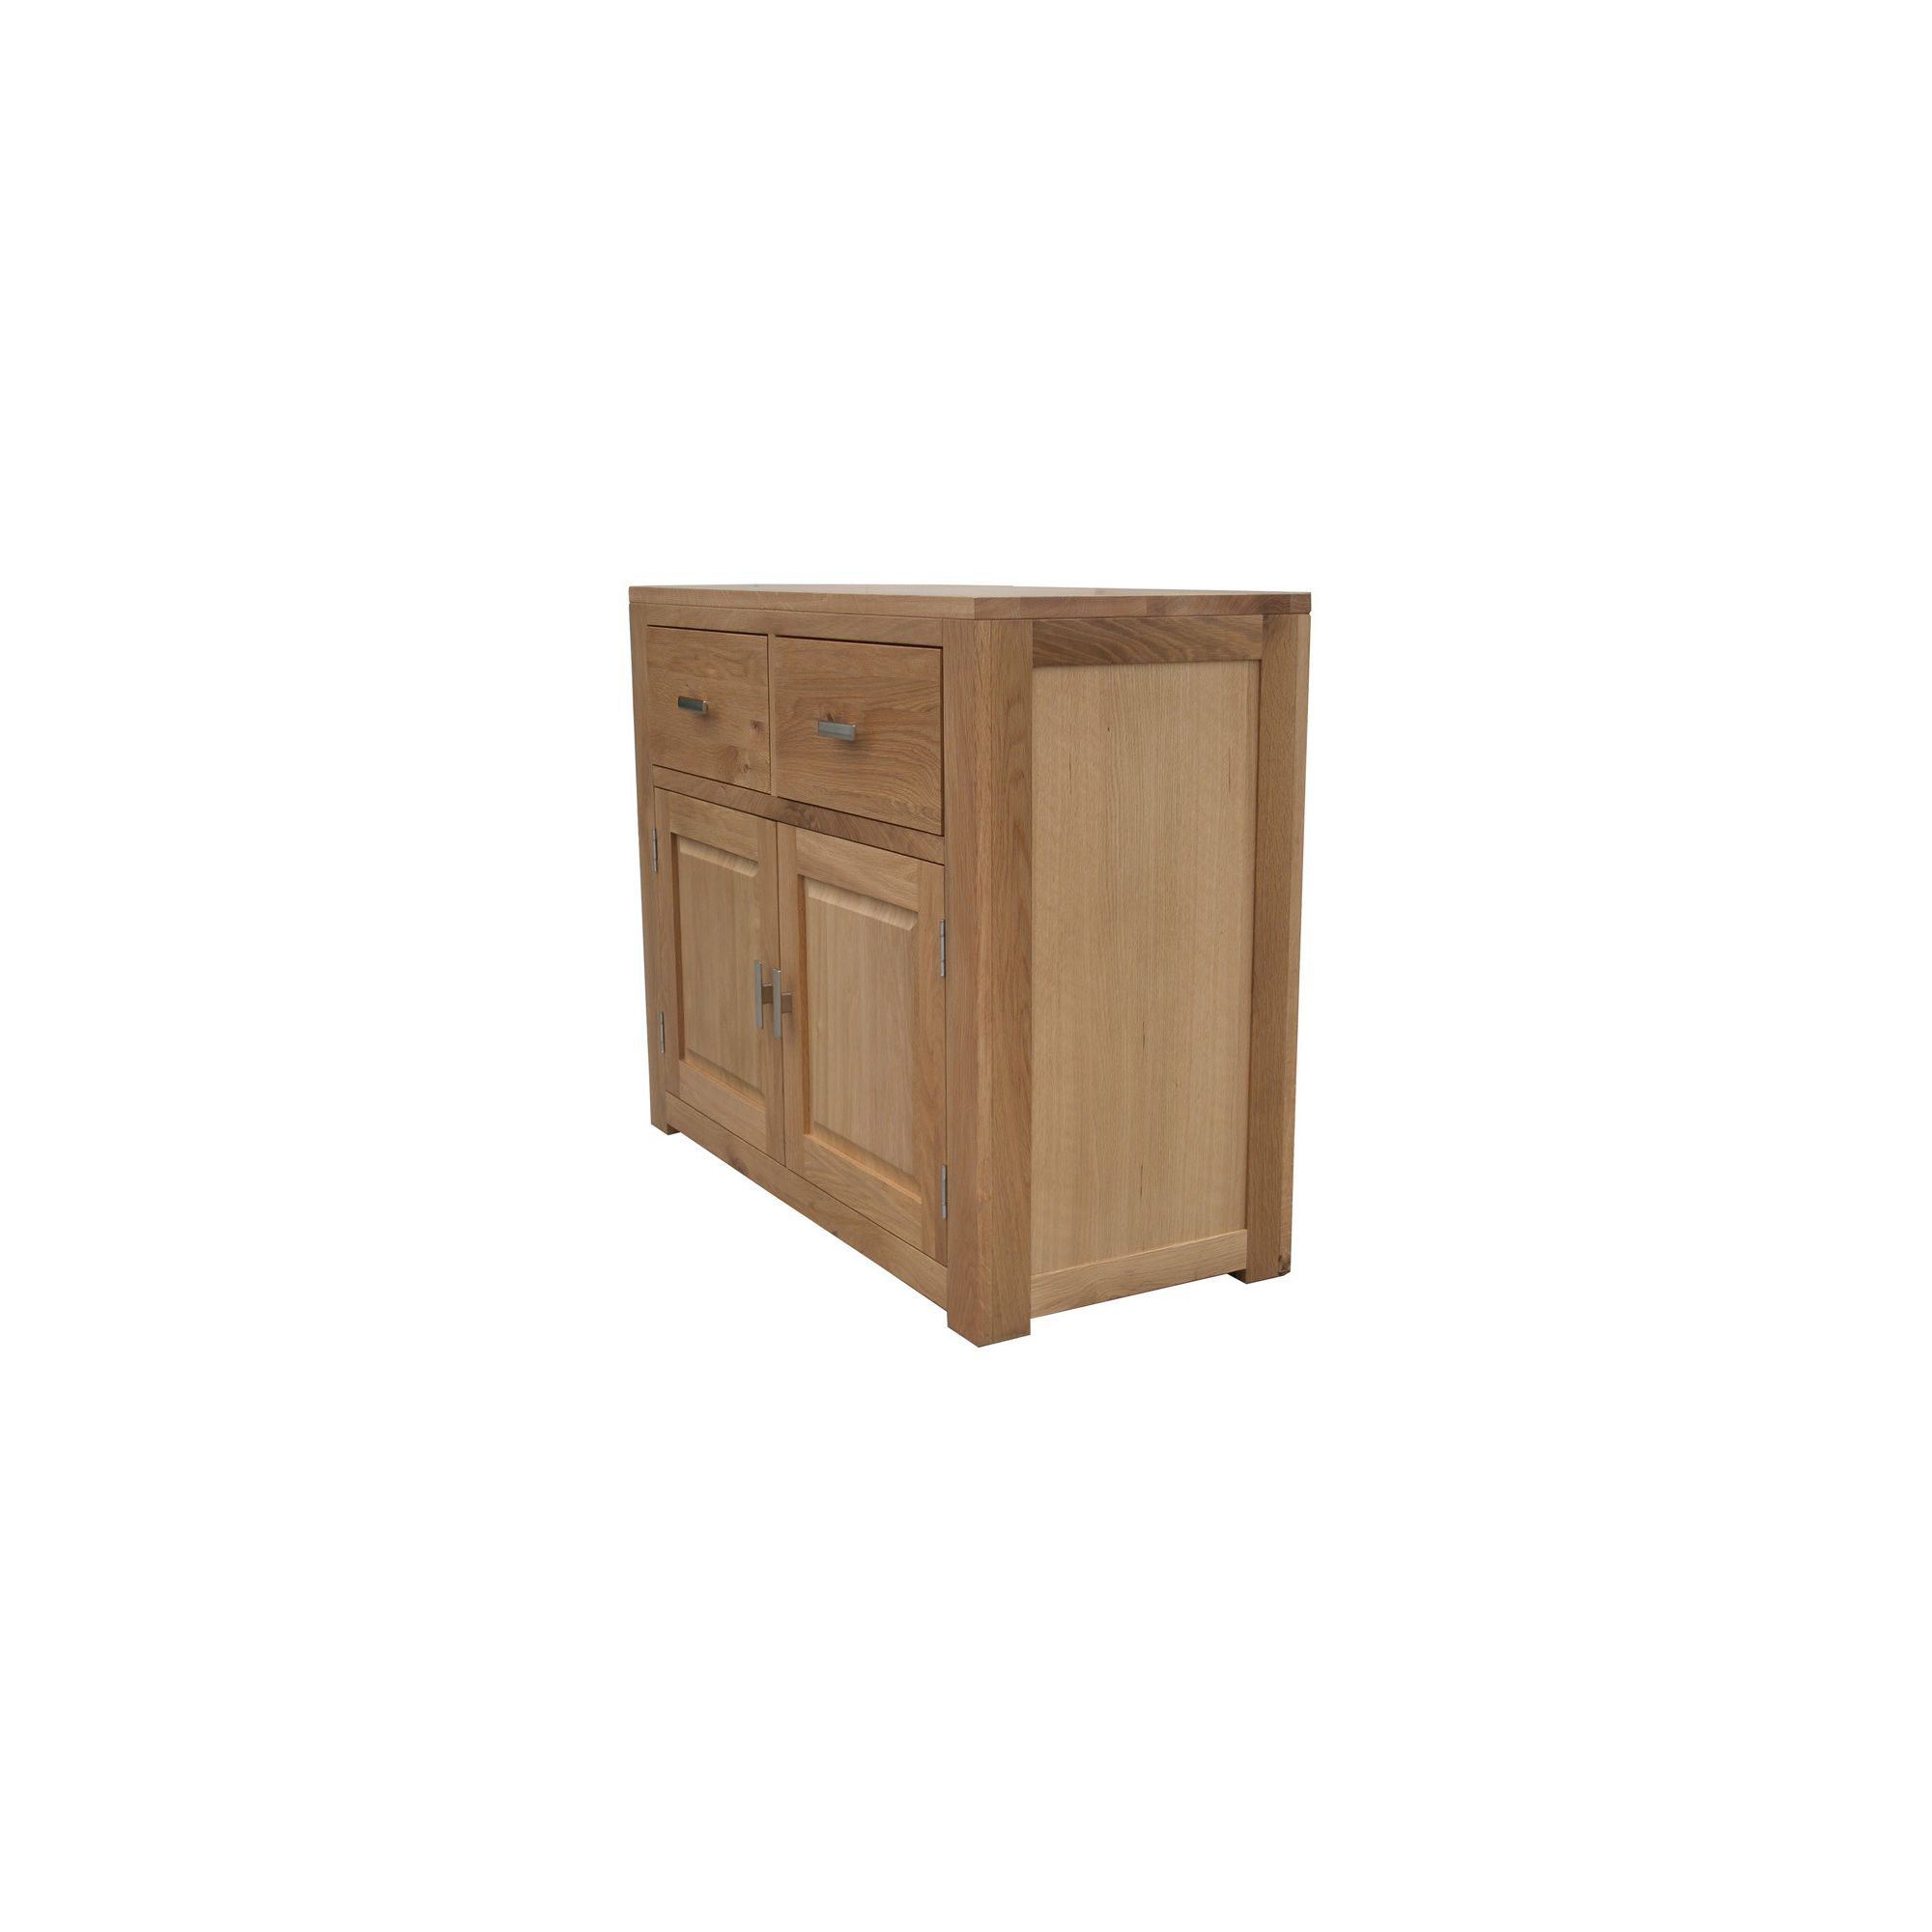 Home Zone Furniture Churchill Oak 2010 Two Drawer Sideboard in Natural Oak at Tesco Direct